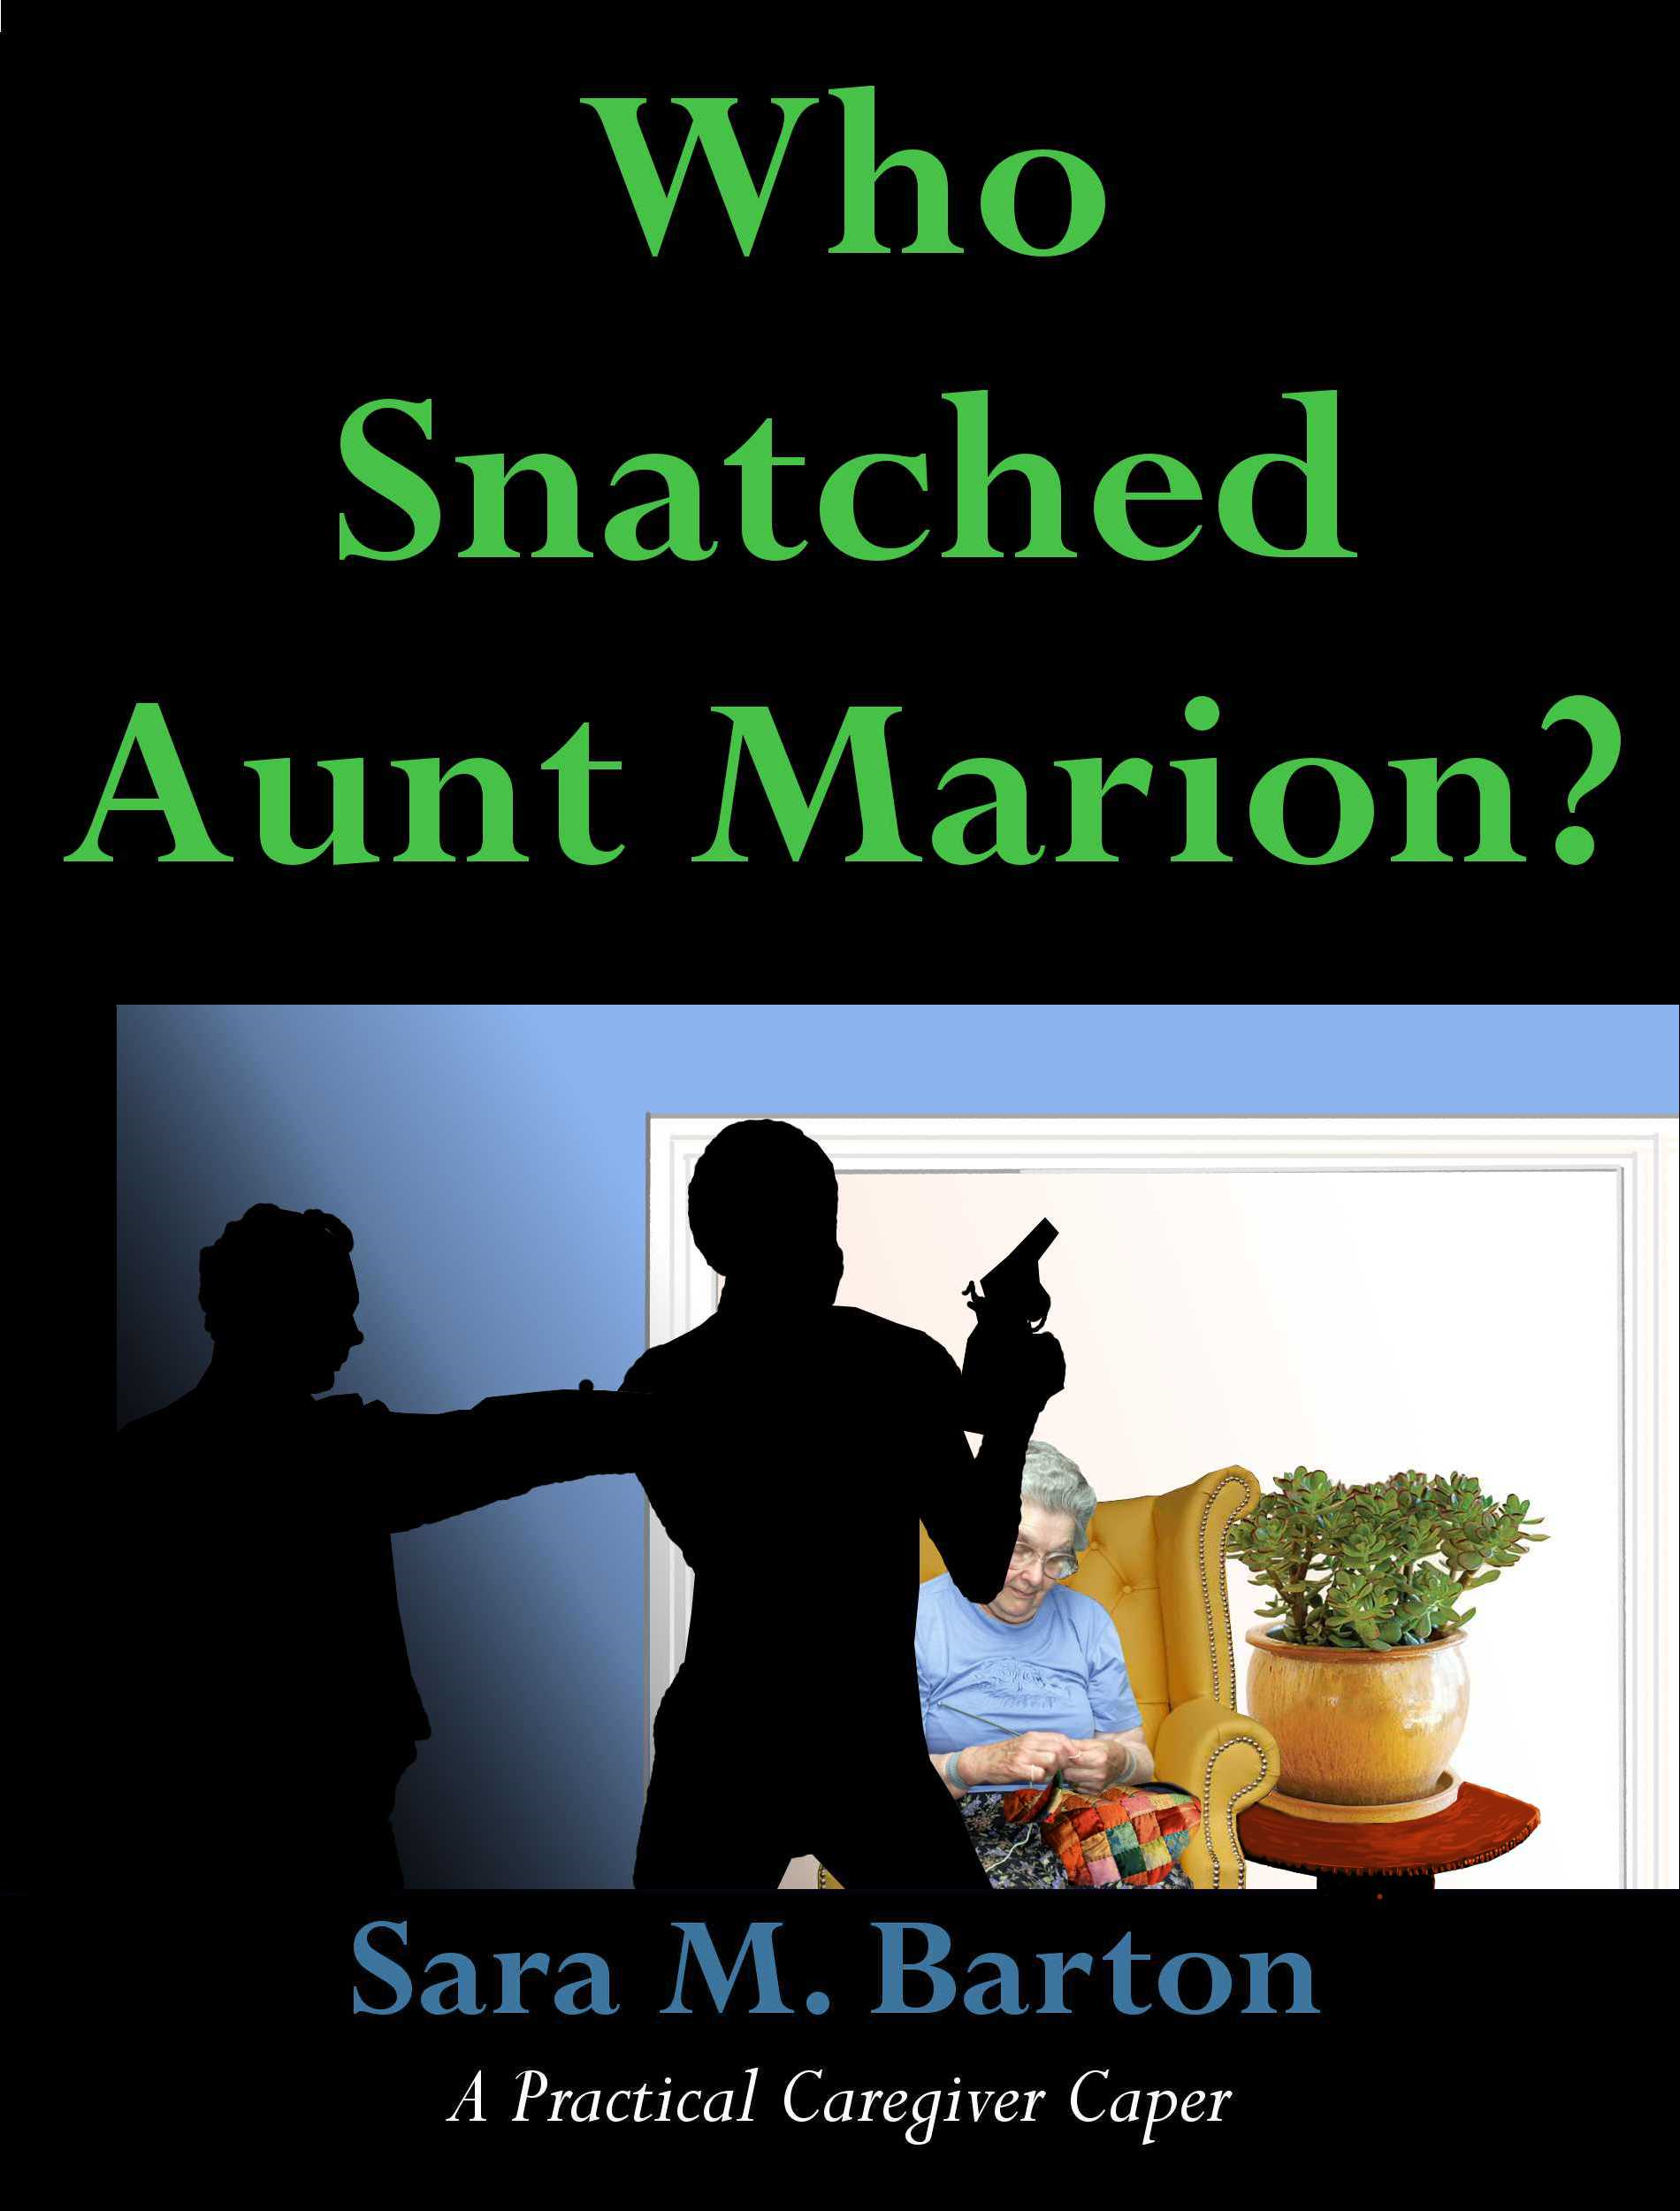 Who Snatched Aunt Marion?